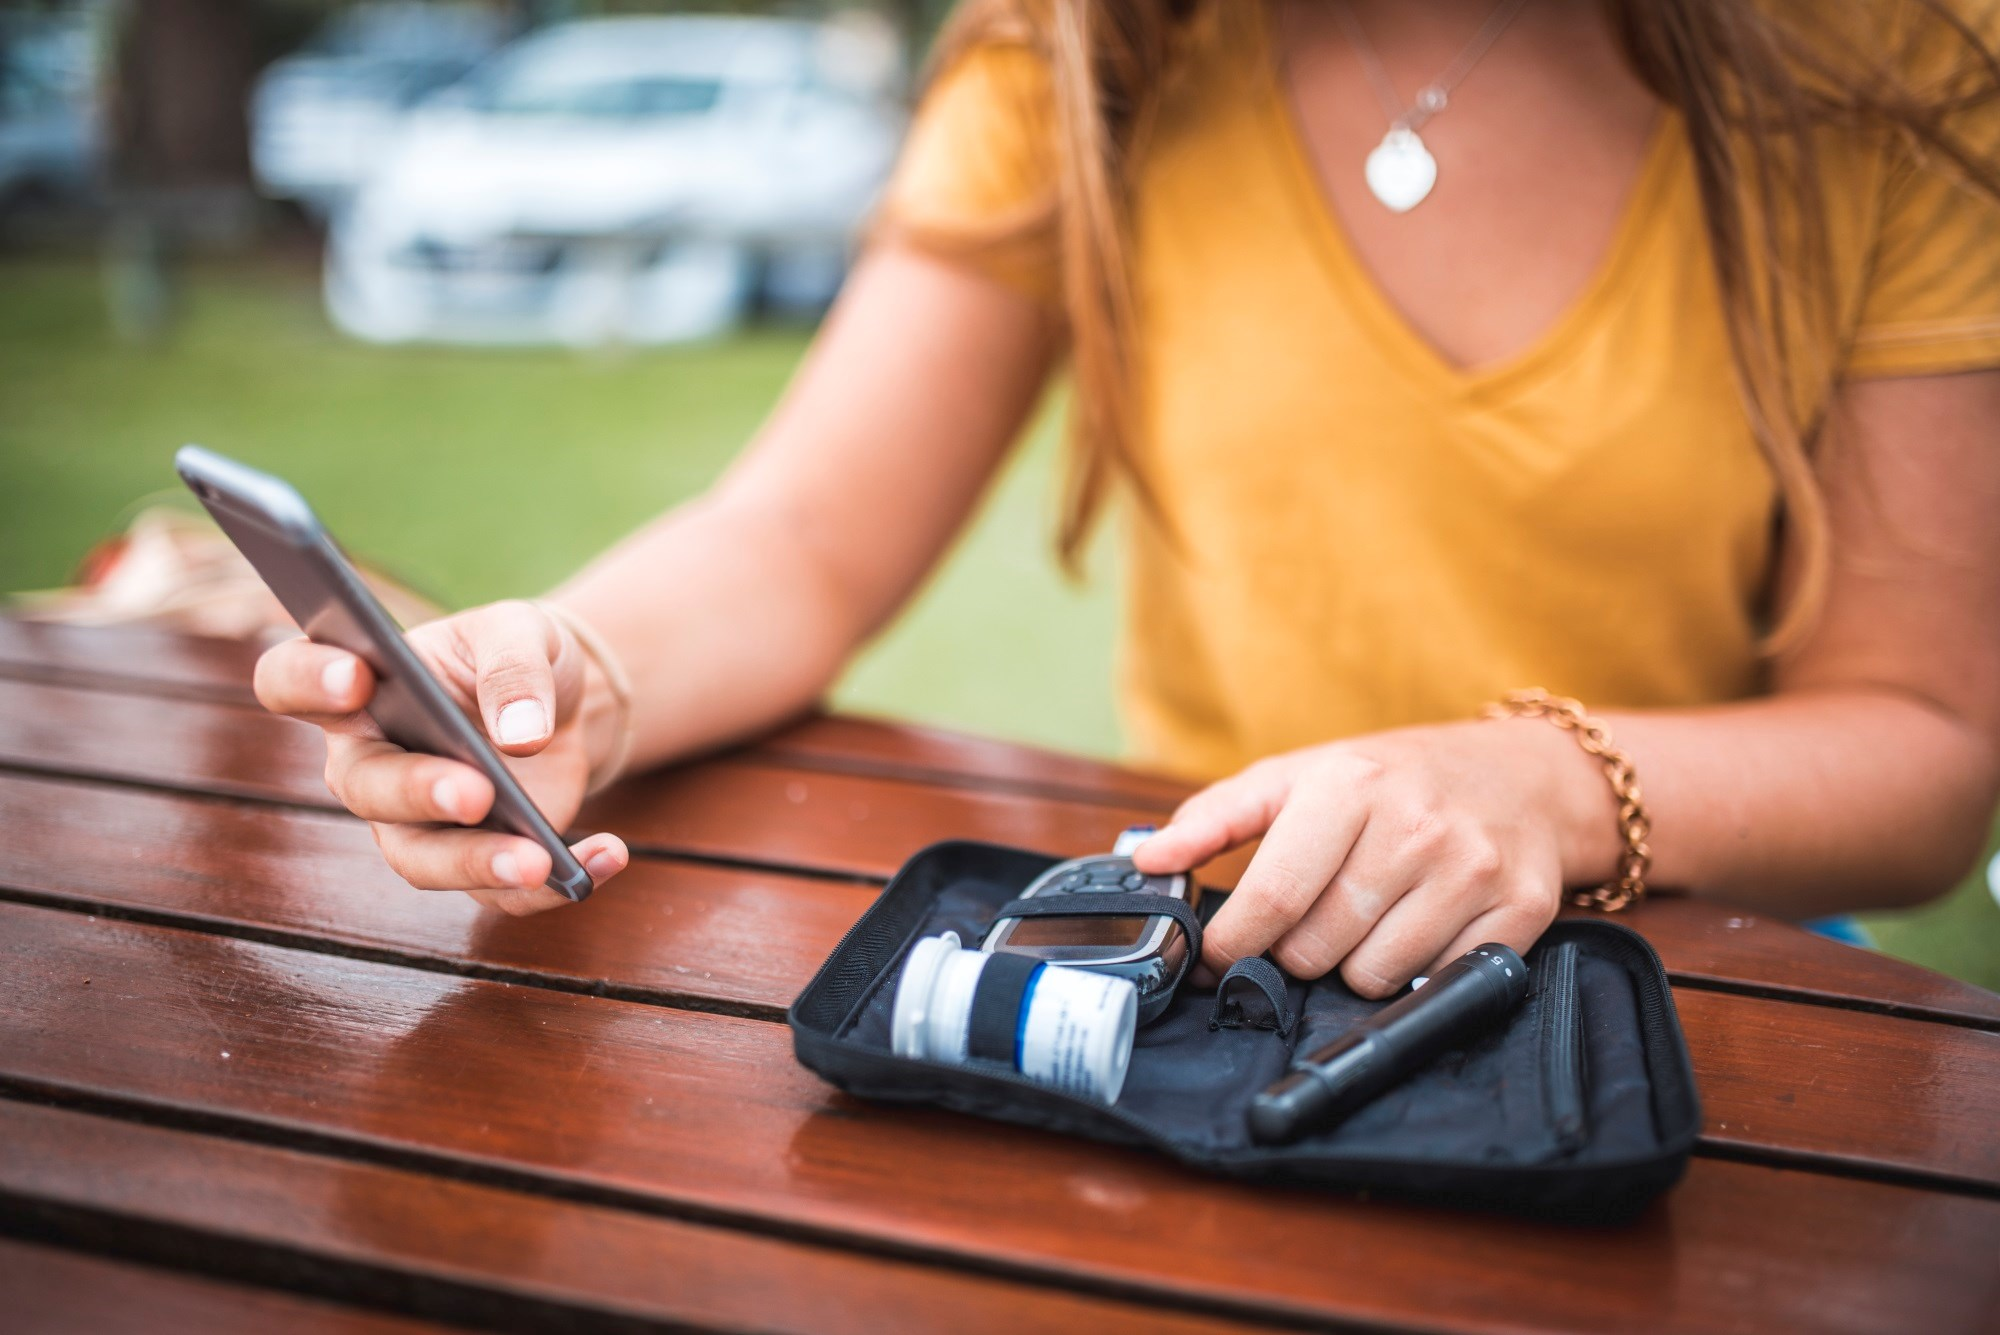 Most Teens, Young Adults With Type 1 Diabetes Report Stigma